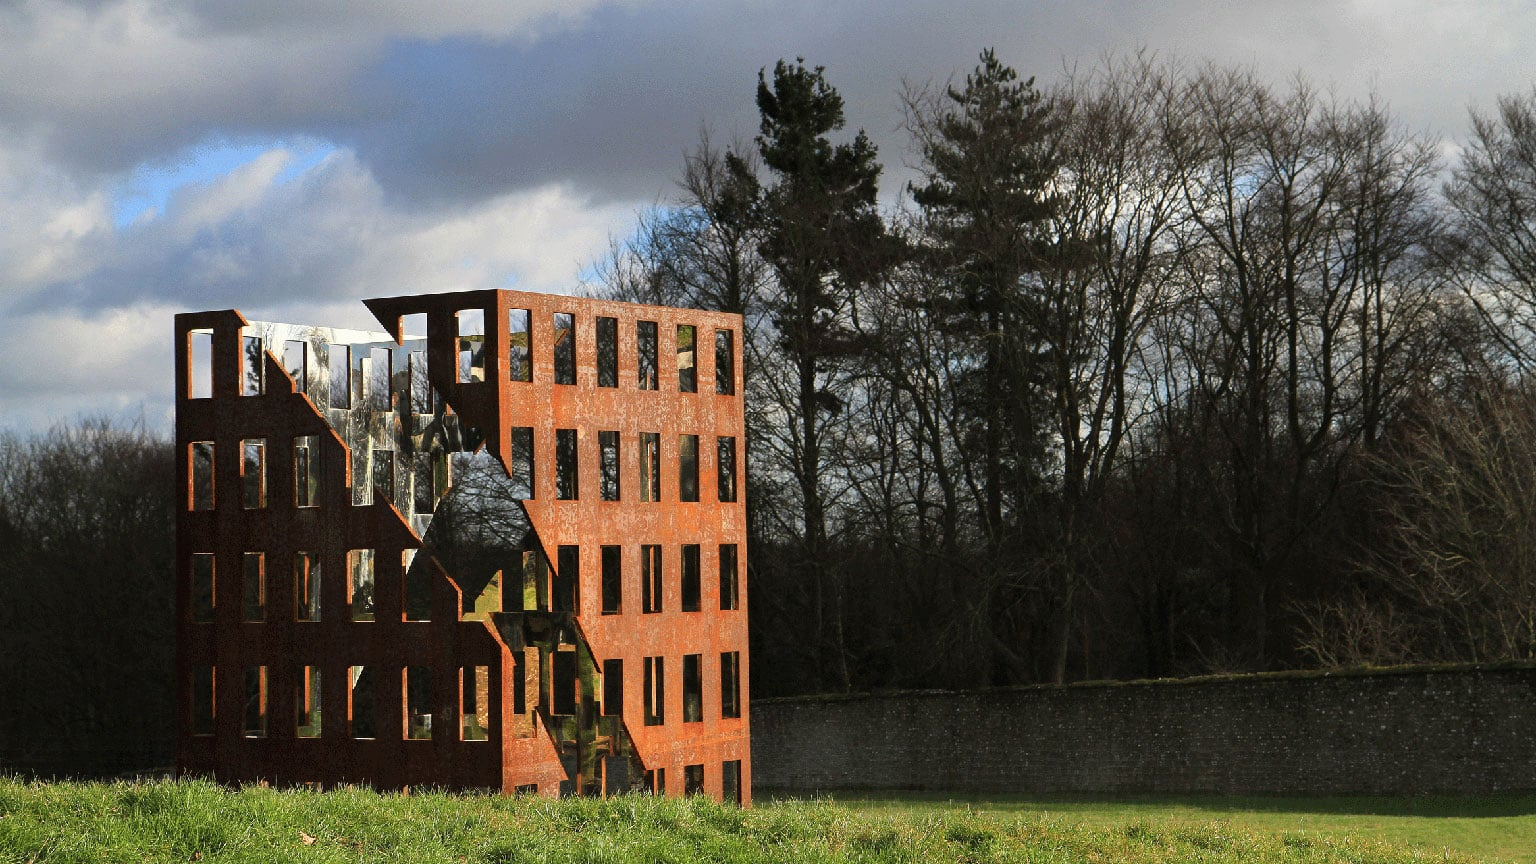 3. The Cass Sculpture Foundation, West Sussex - 50% off entry with National Art Pass. Above: 'X' by Viktor Timofeev.